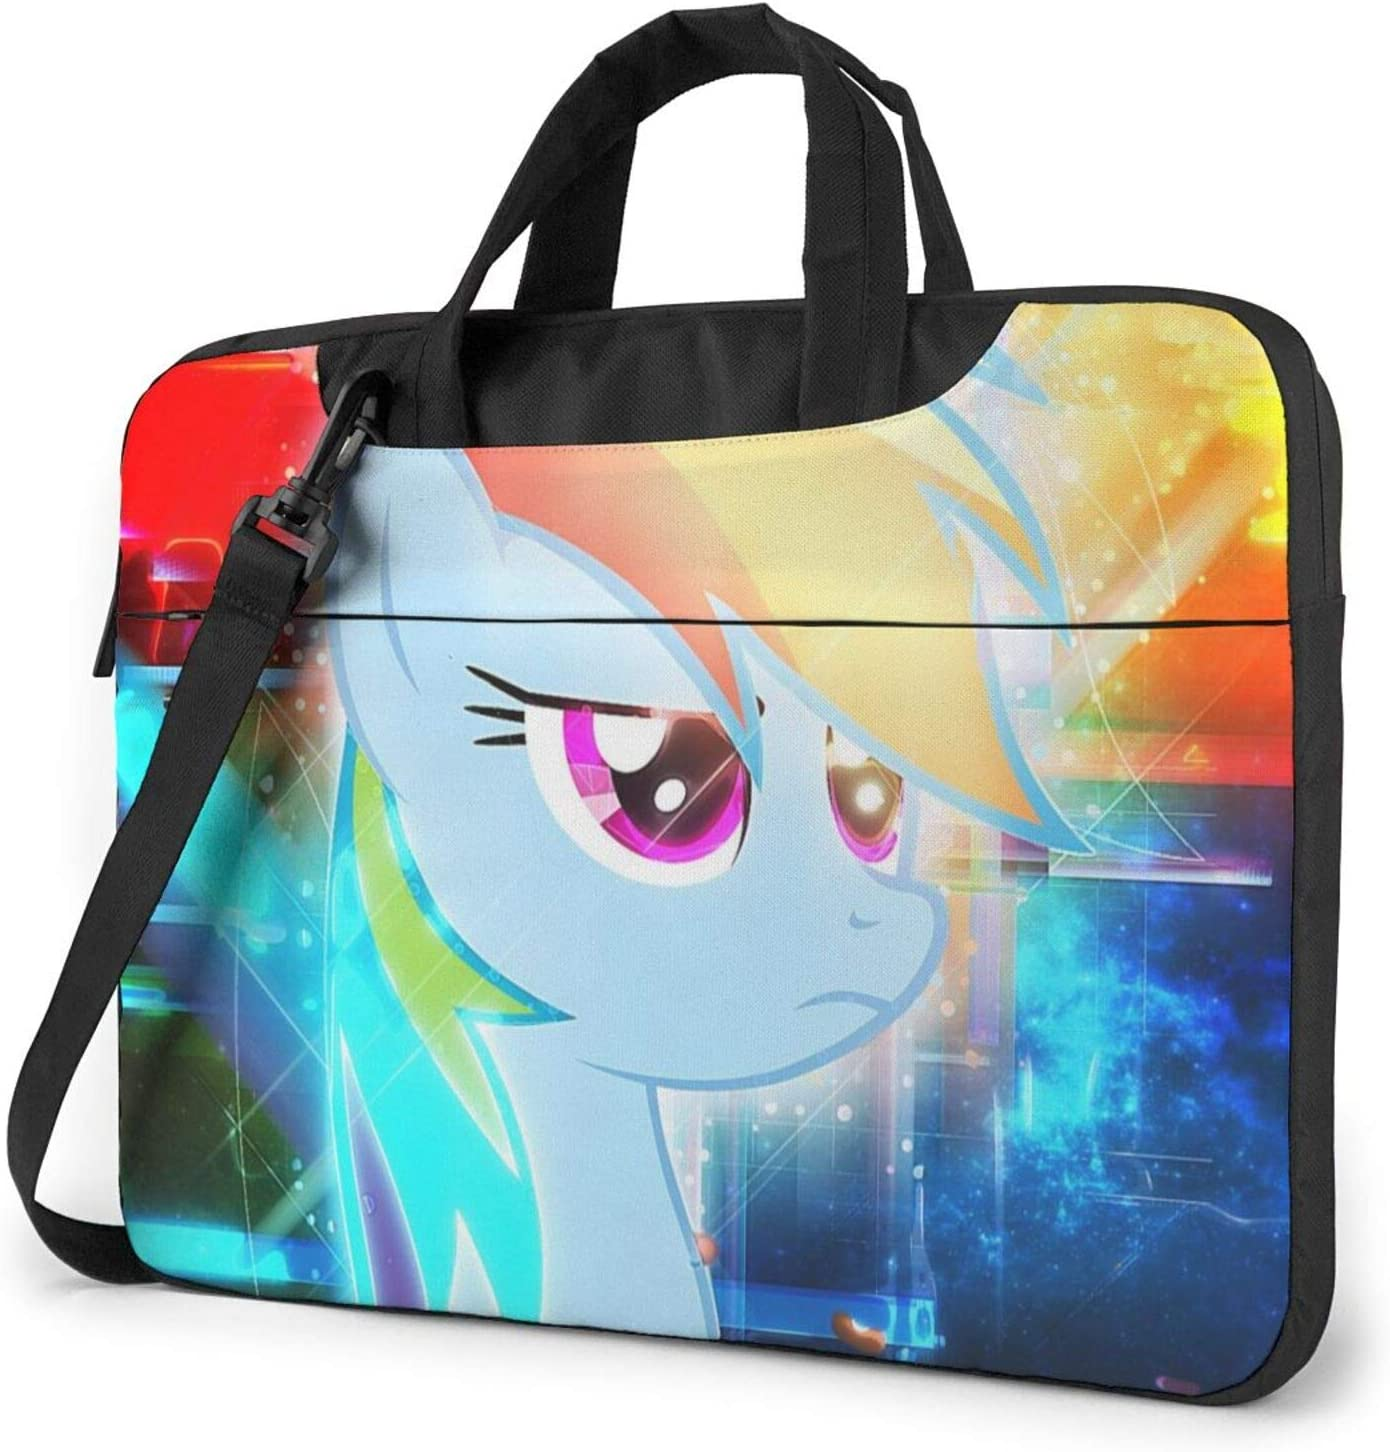 Laptop Challenge the lowest price Sleeve Challenge the lowest price of Japan Bag Case 15.6 inch B Notebook Portable